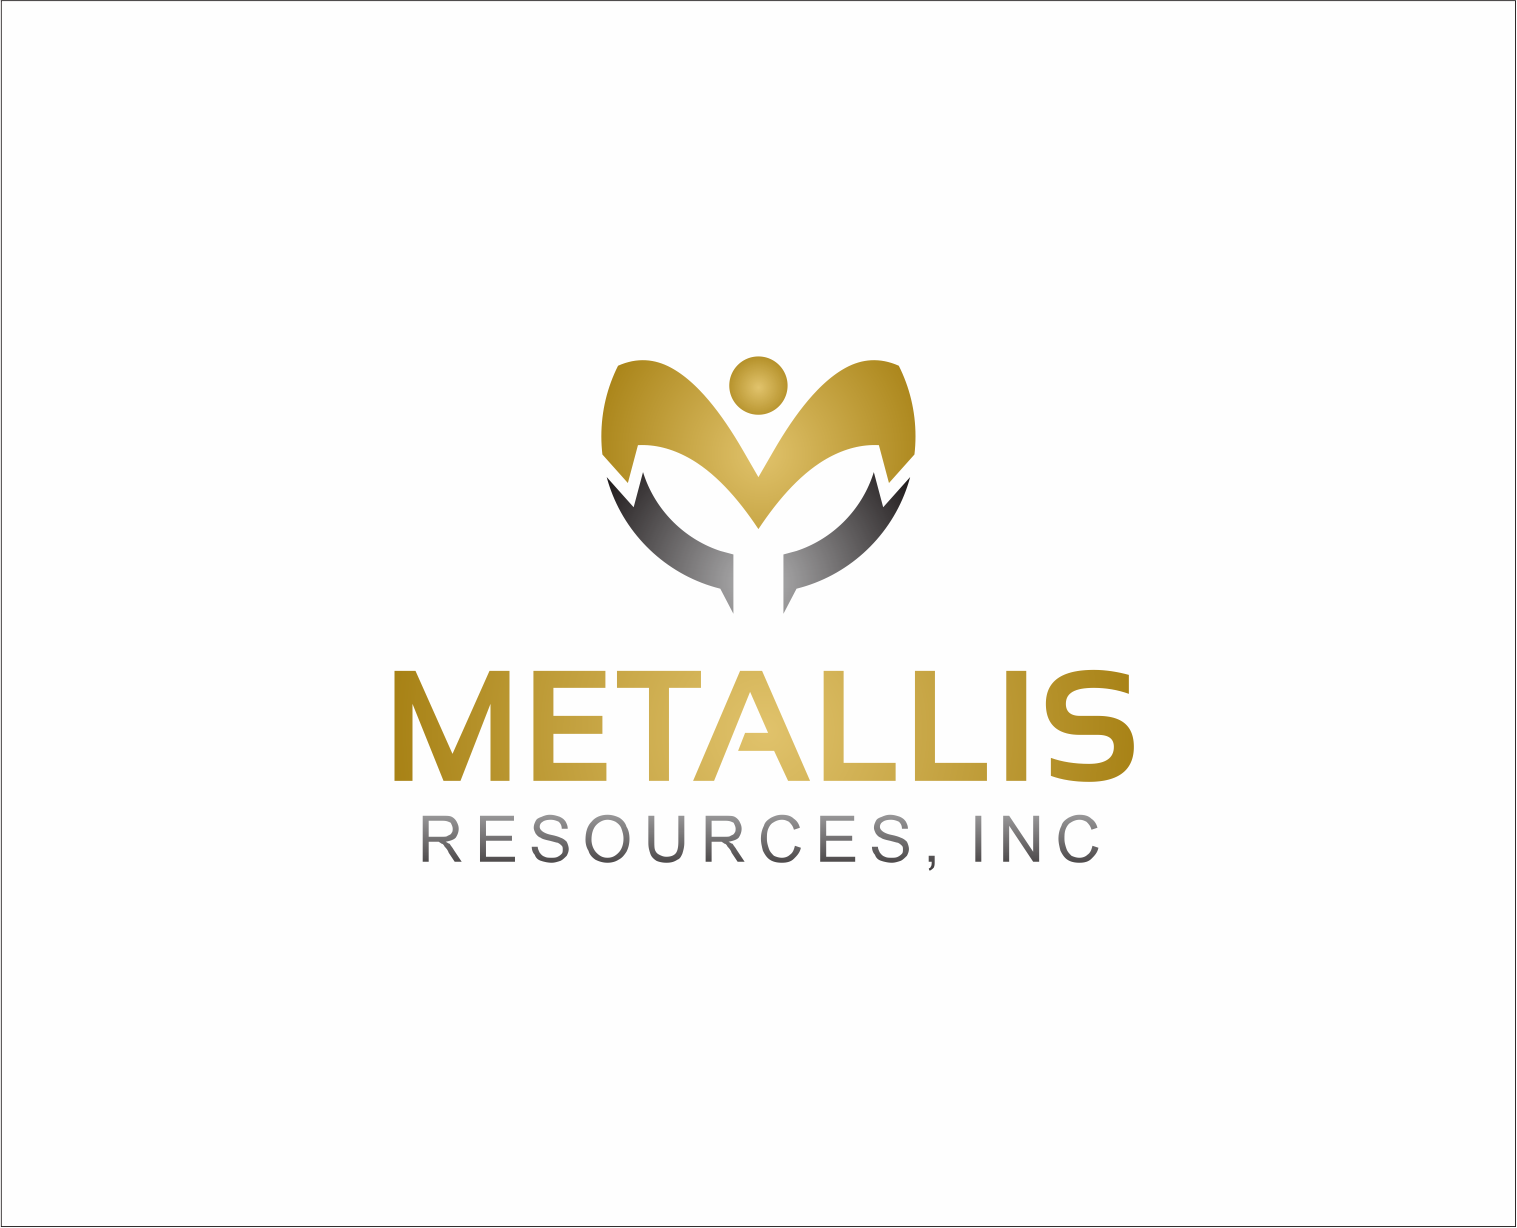 Logo Design by Armada Jamaluddin - Entry No. 138 in the Logo Design Contest Metallis Resources Inc Logo Design.